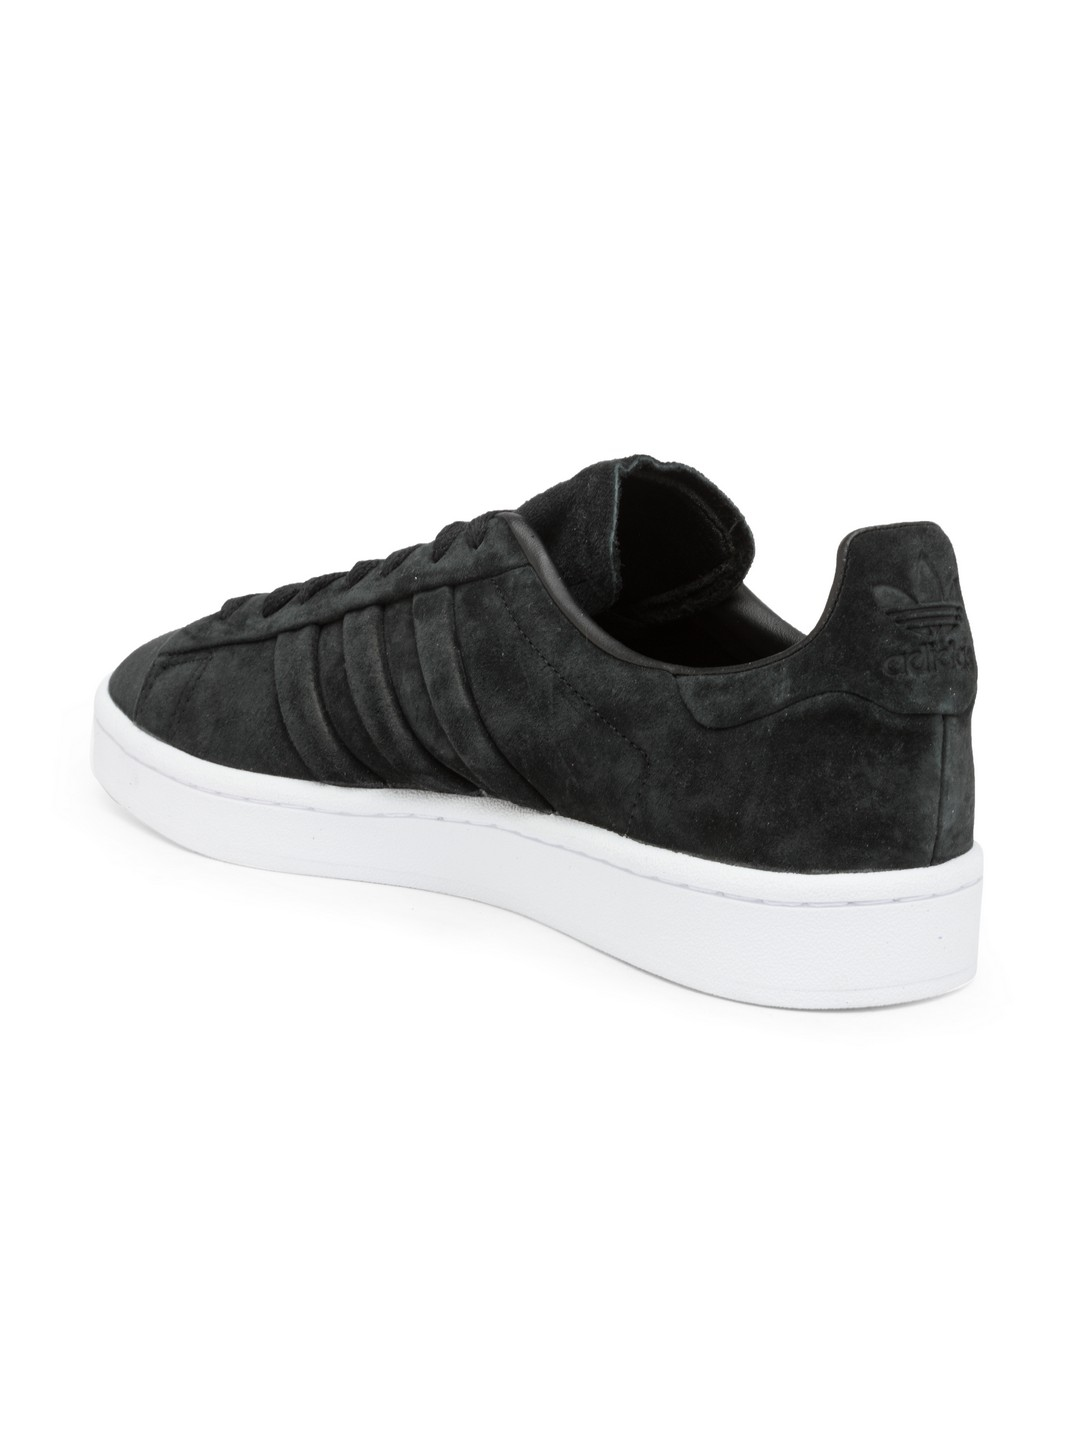 online store 1d4f0 560bc ADIDAS Originals Men Black Campus Stitch   Turn Suede Sneakers